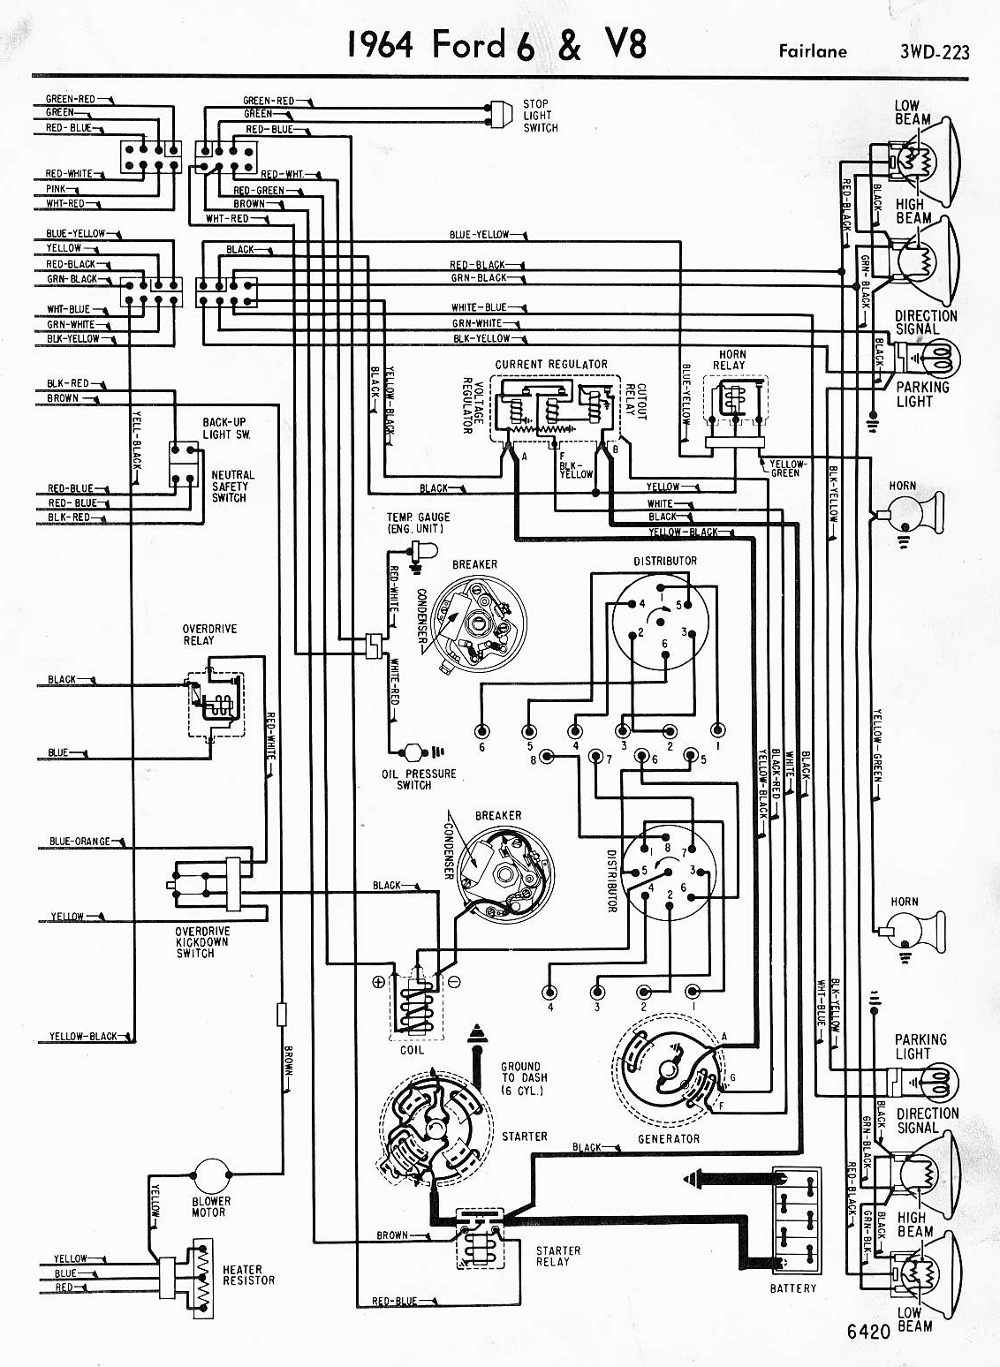 Photo Ford Wiring Diagram 1967 Ford F250 Wiring Diagram Wiring Diagram1967 Ford F100 Wiring Schematic Online Wiring Diagramf100 Wir Mustang Engine Diagram Wire